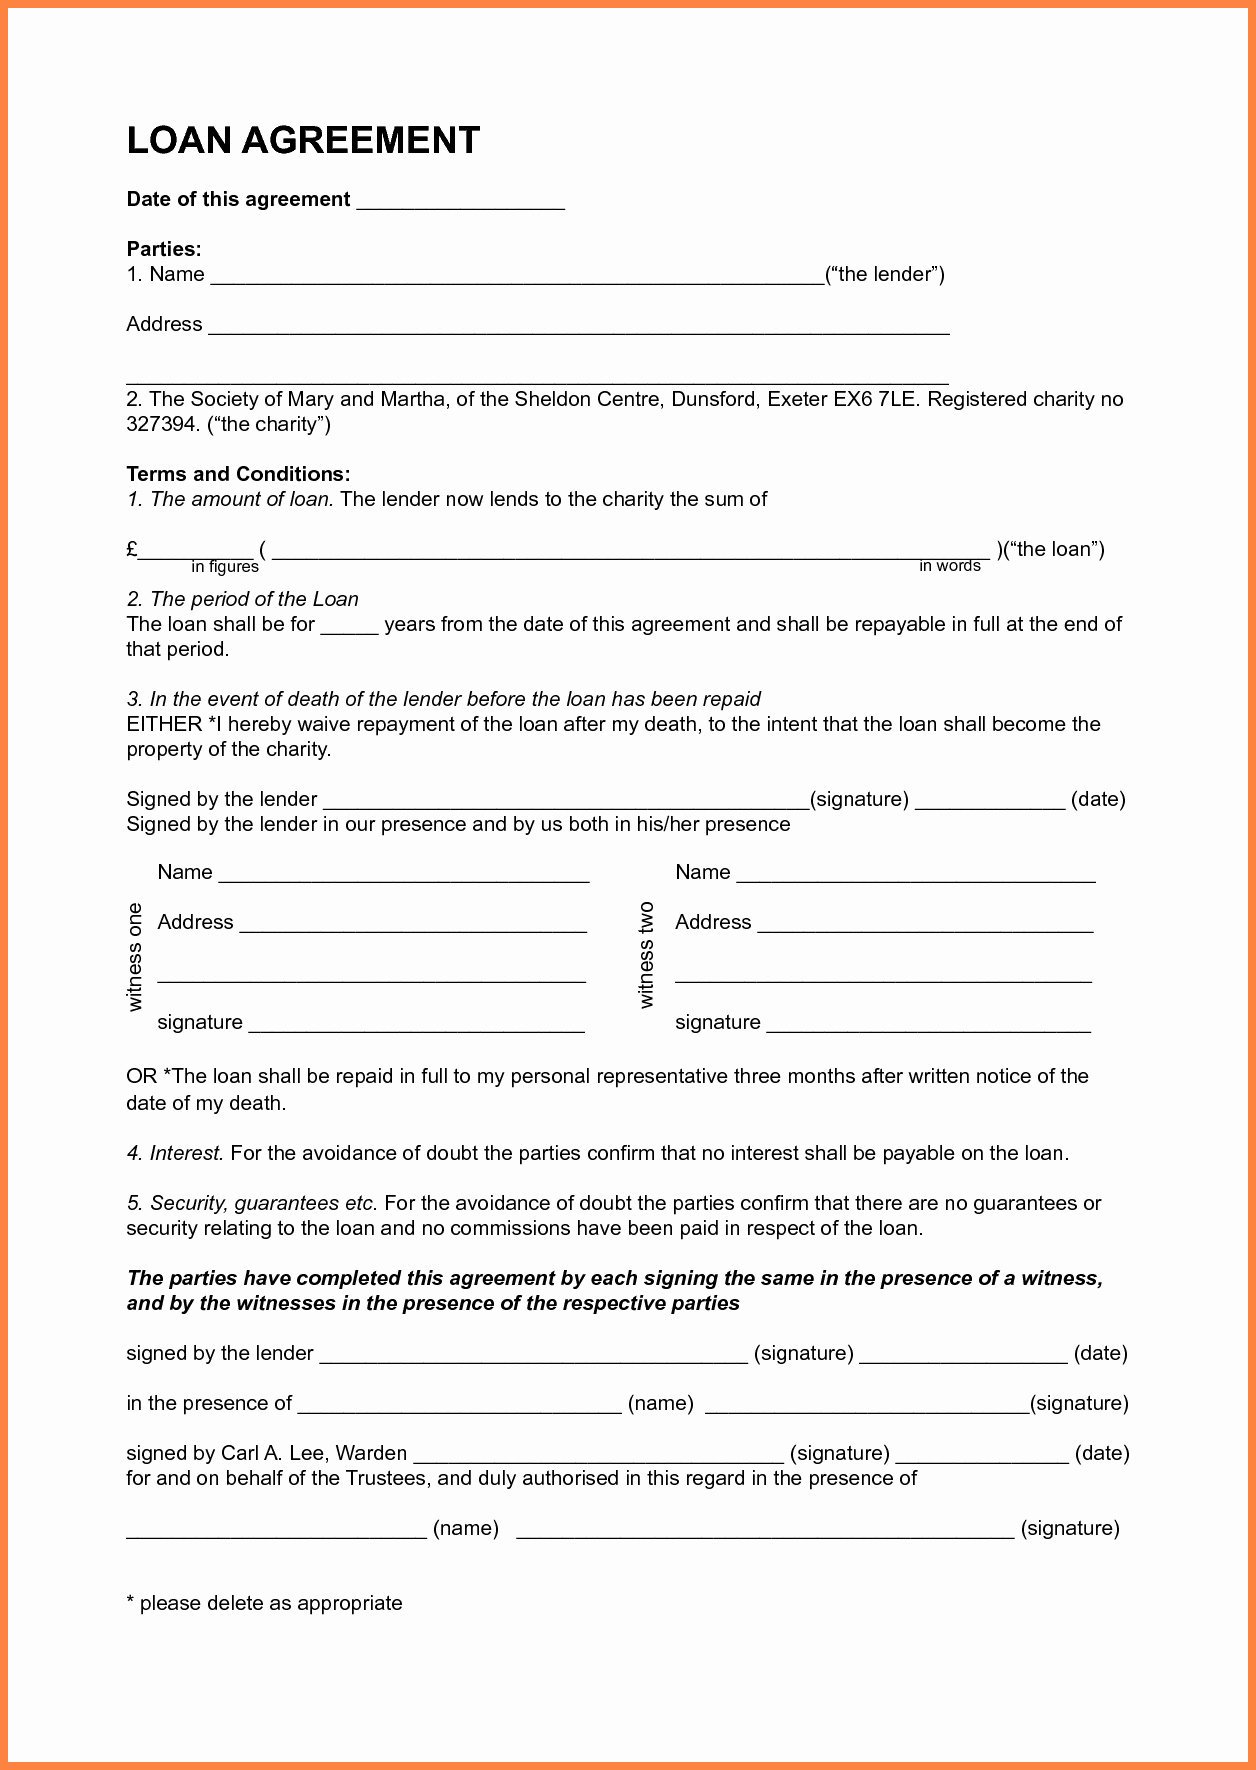 Personal Loan Agreement Template New 7 Template Loan Agreement Between Family Members